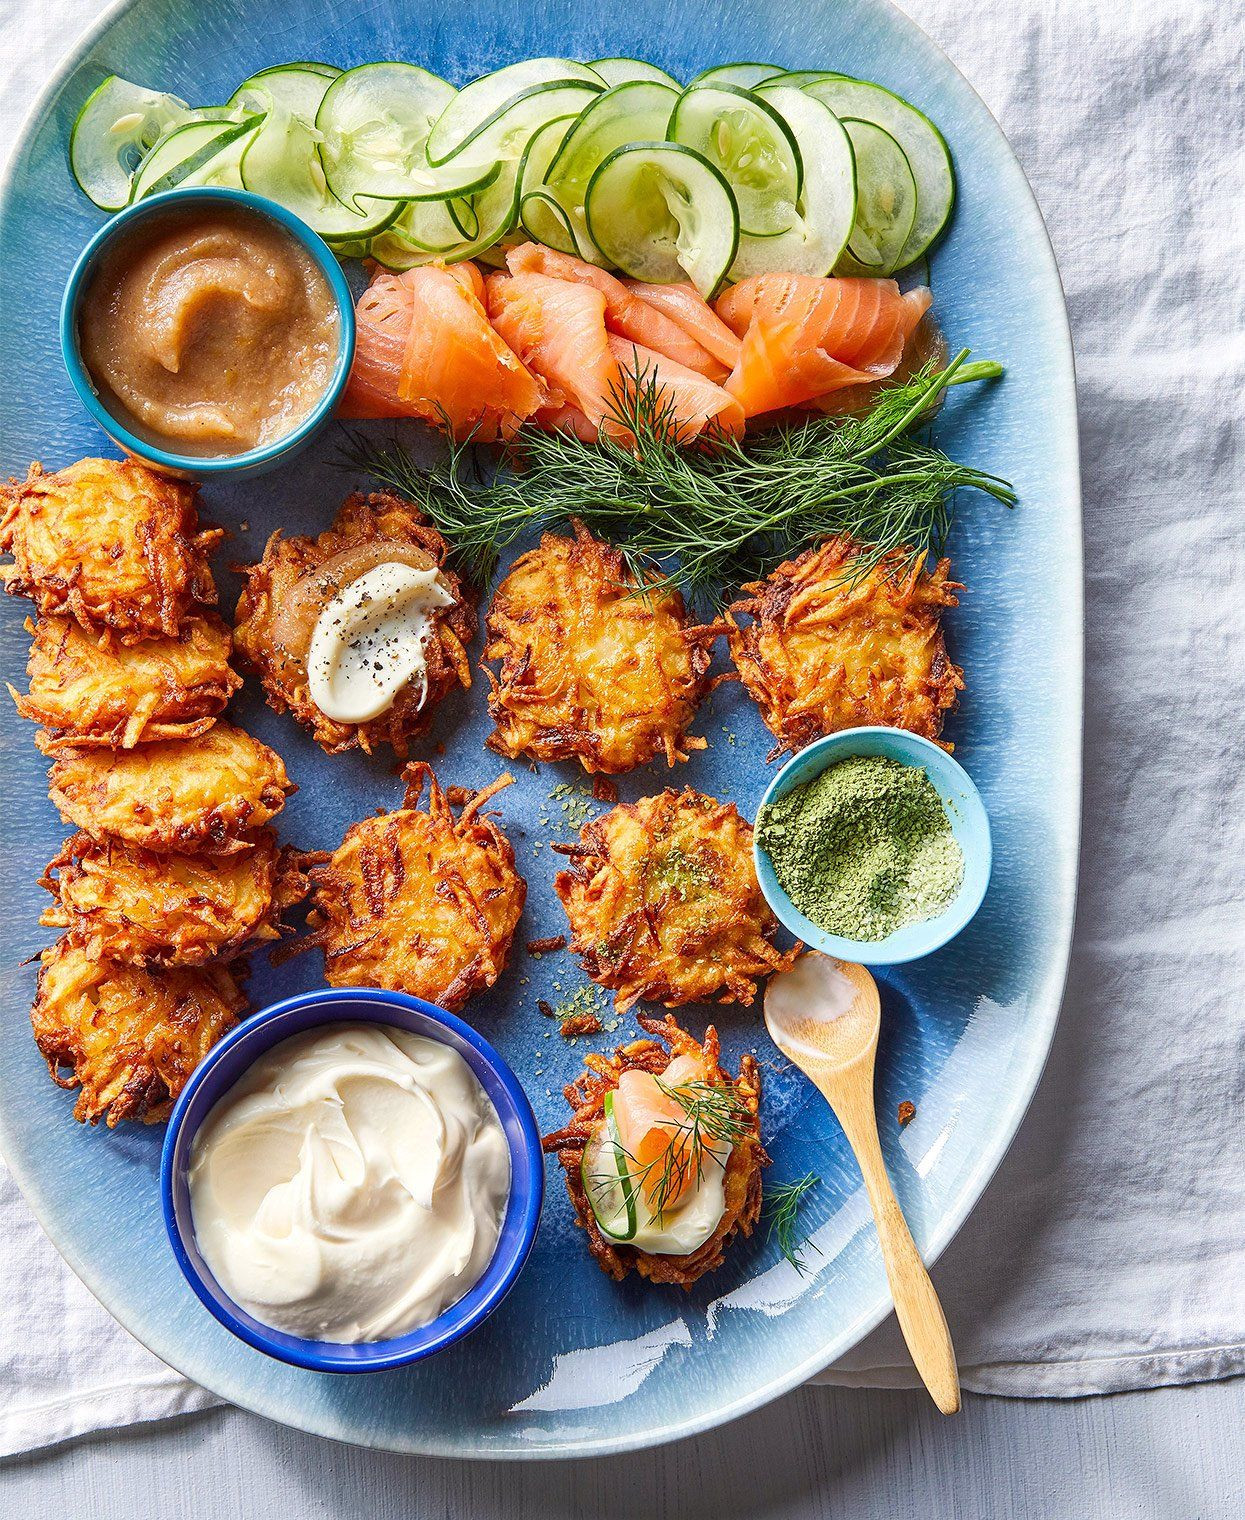 Hanukkah Side Dishes  13 Hanukkah Side Dishes So Tasty You'll Want to Make Them